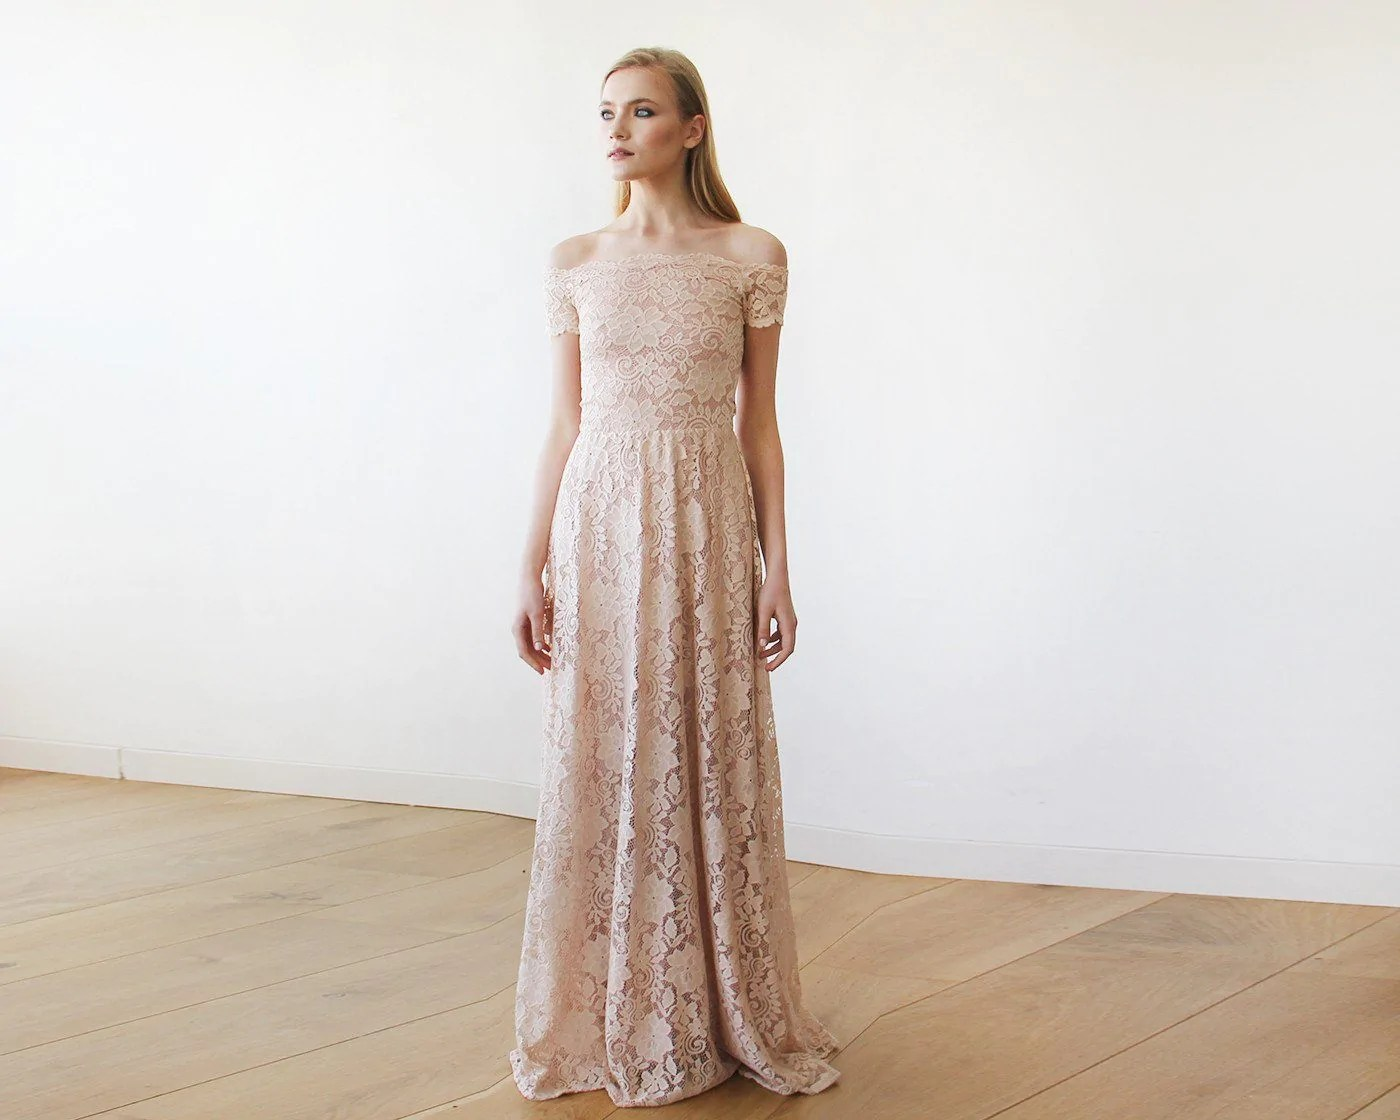 Romantic Blush Pink Floral Lace Maxi Dress. Short Off-the